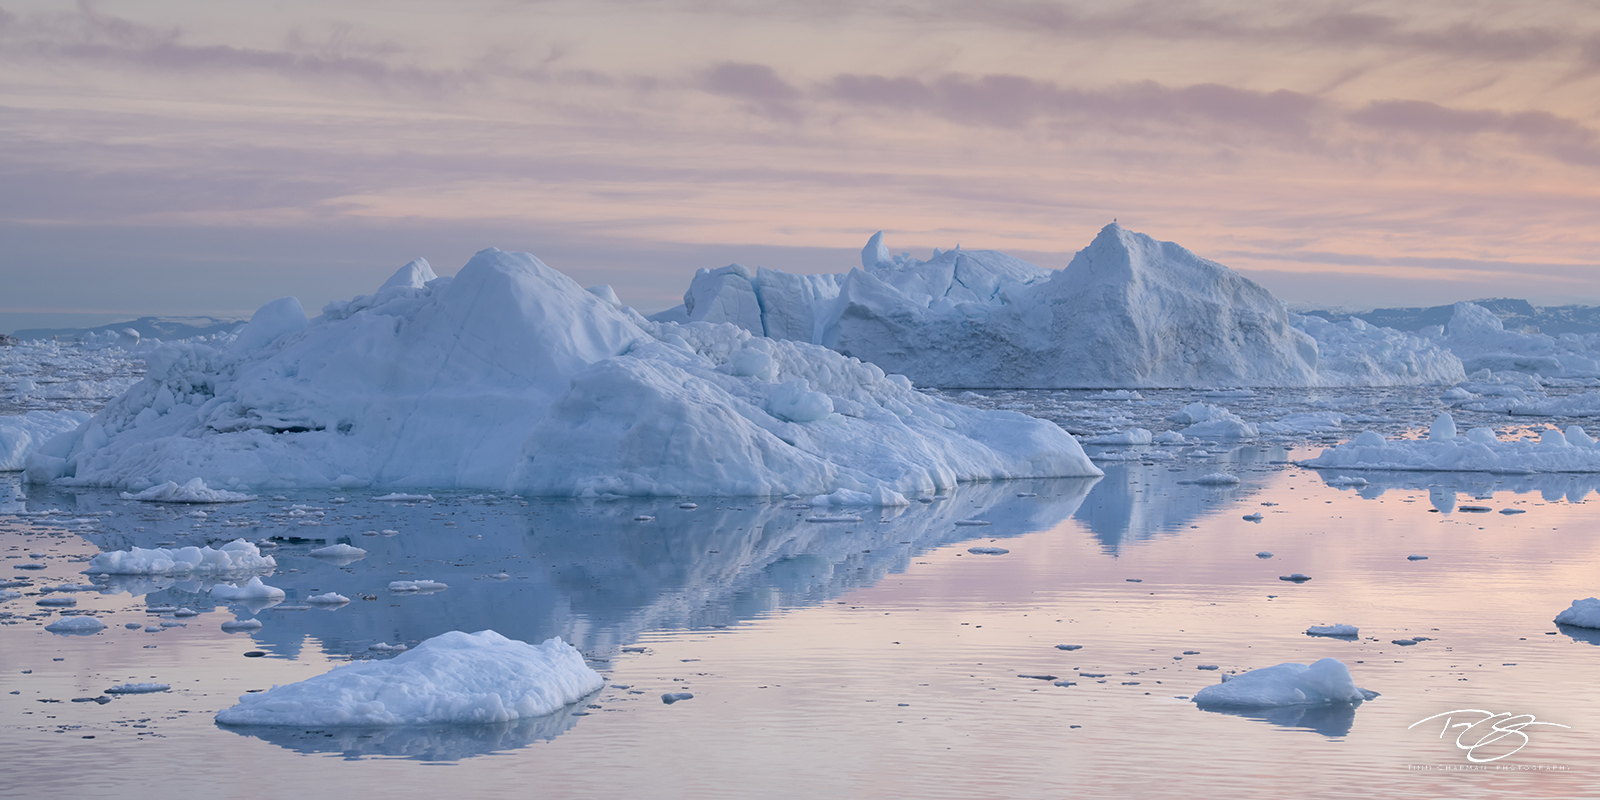 ilulissat icefjord; kangia icefjord; ice; iceberg; reflection; dusk; eventide; twilight; pastel sky; pink sky; alpenglow, photo